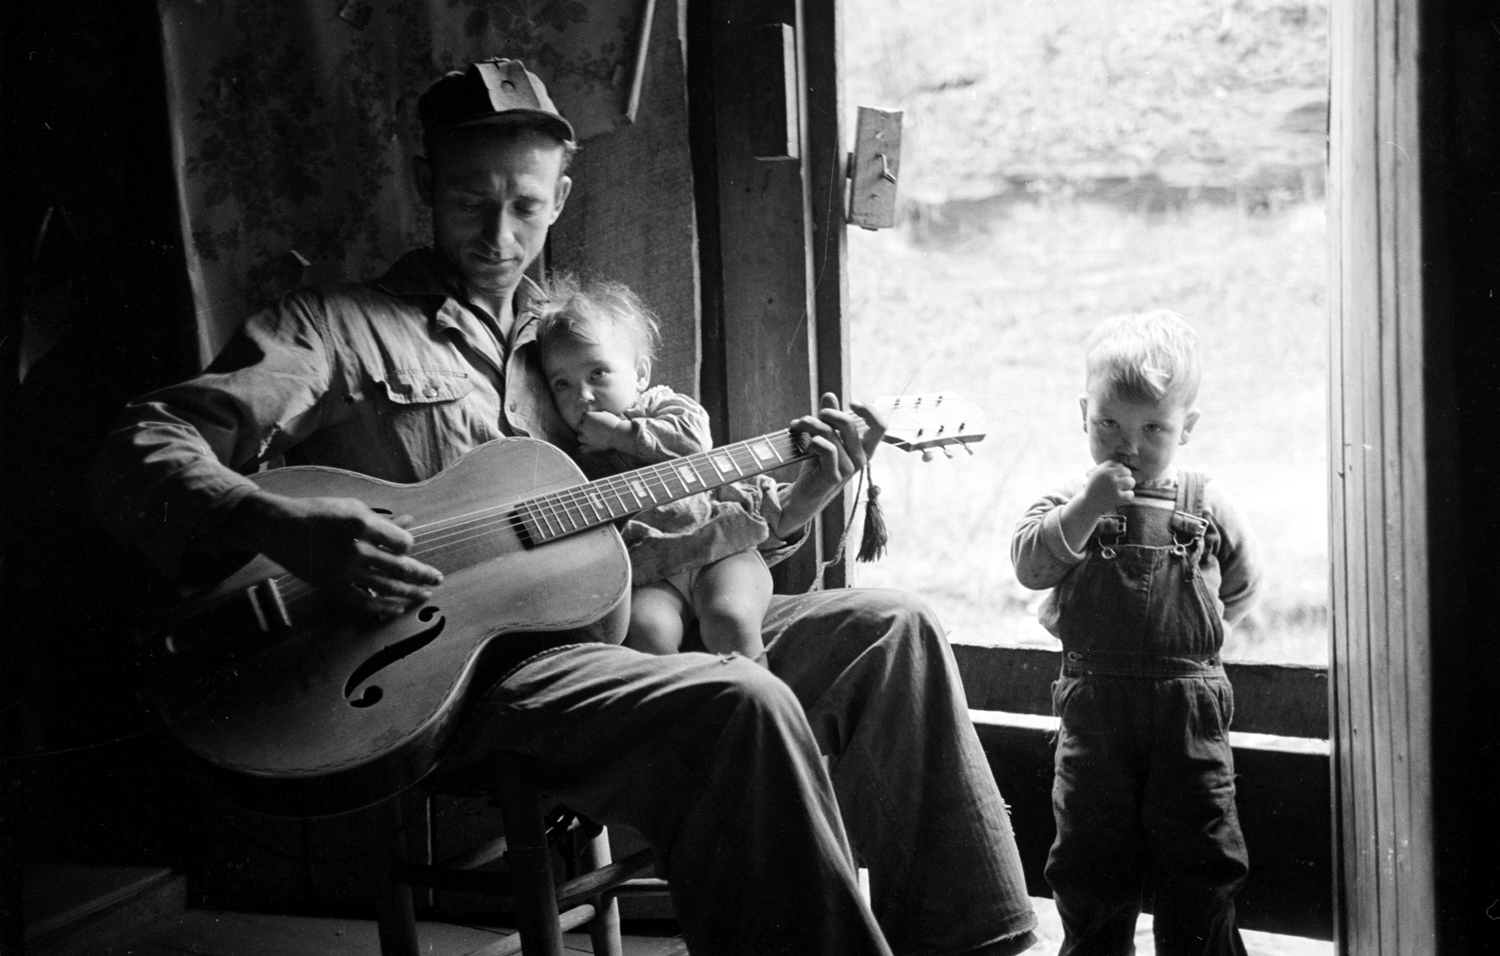 Caption from LIFE. Family life in Leslie County's mountains has the warmth of a father singing to his children.